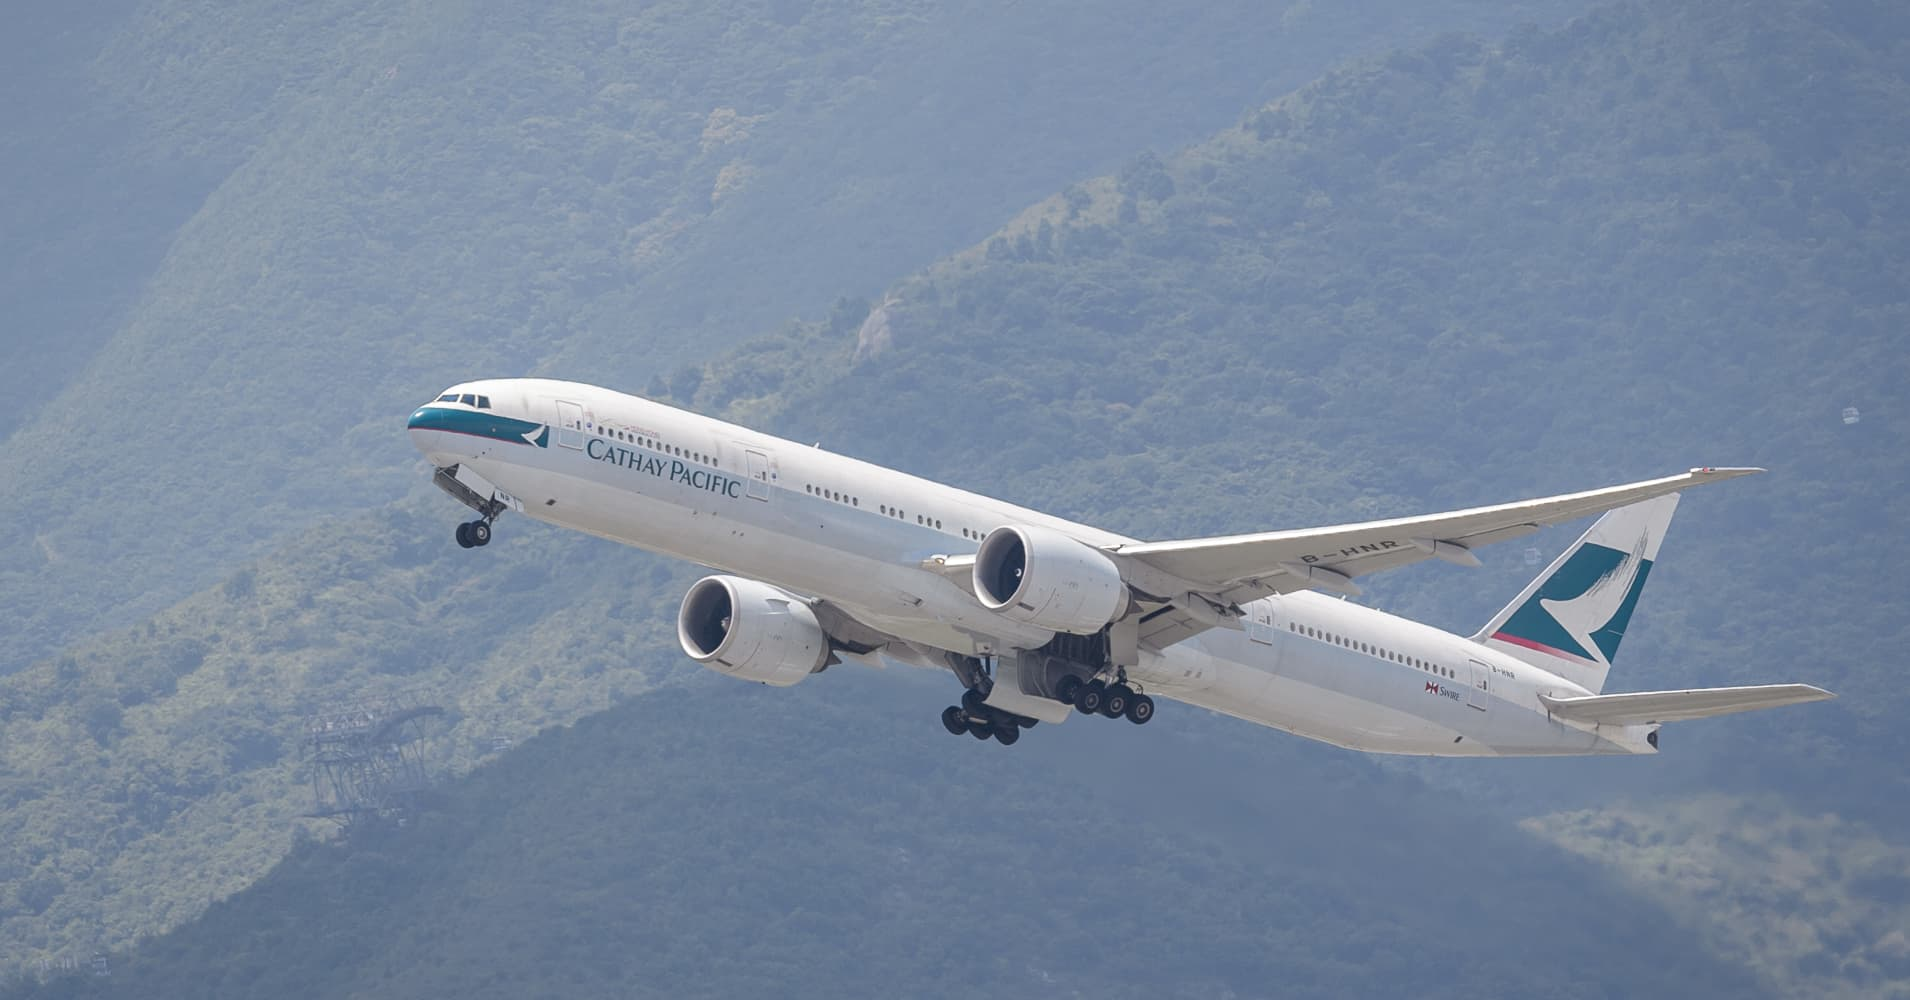 Cathay Pacific says it's 'very happy' with its Boeing fleet, despite recent 737 Max crash